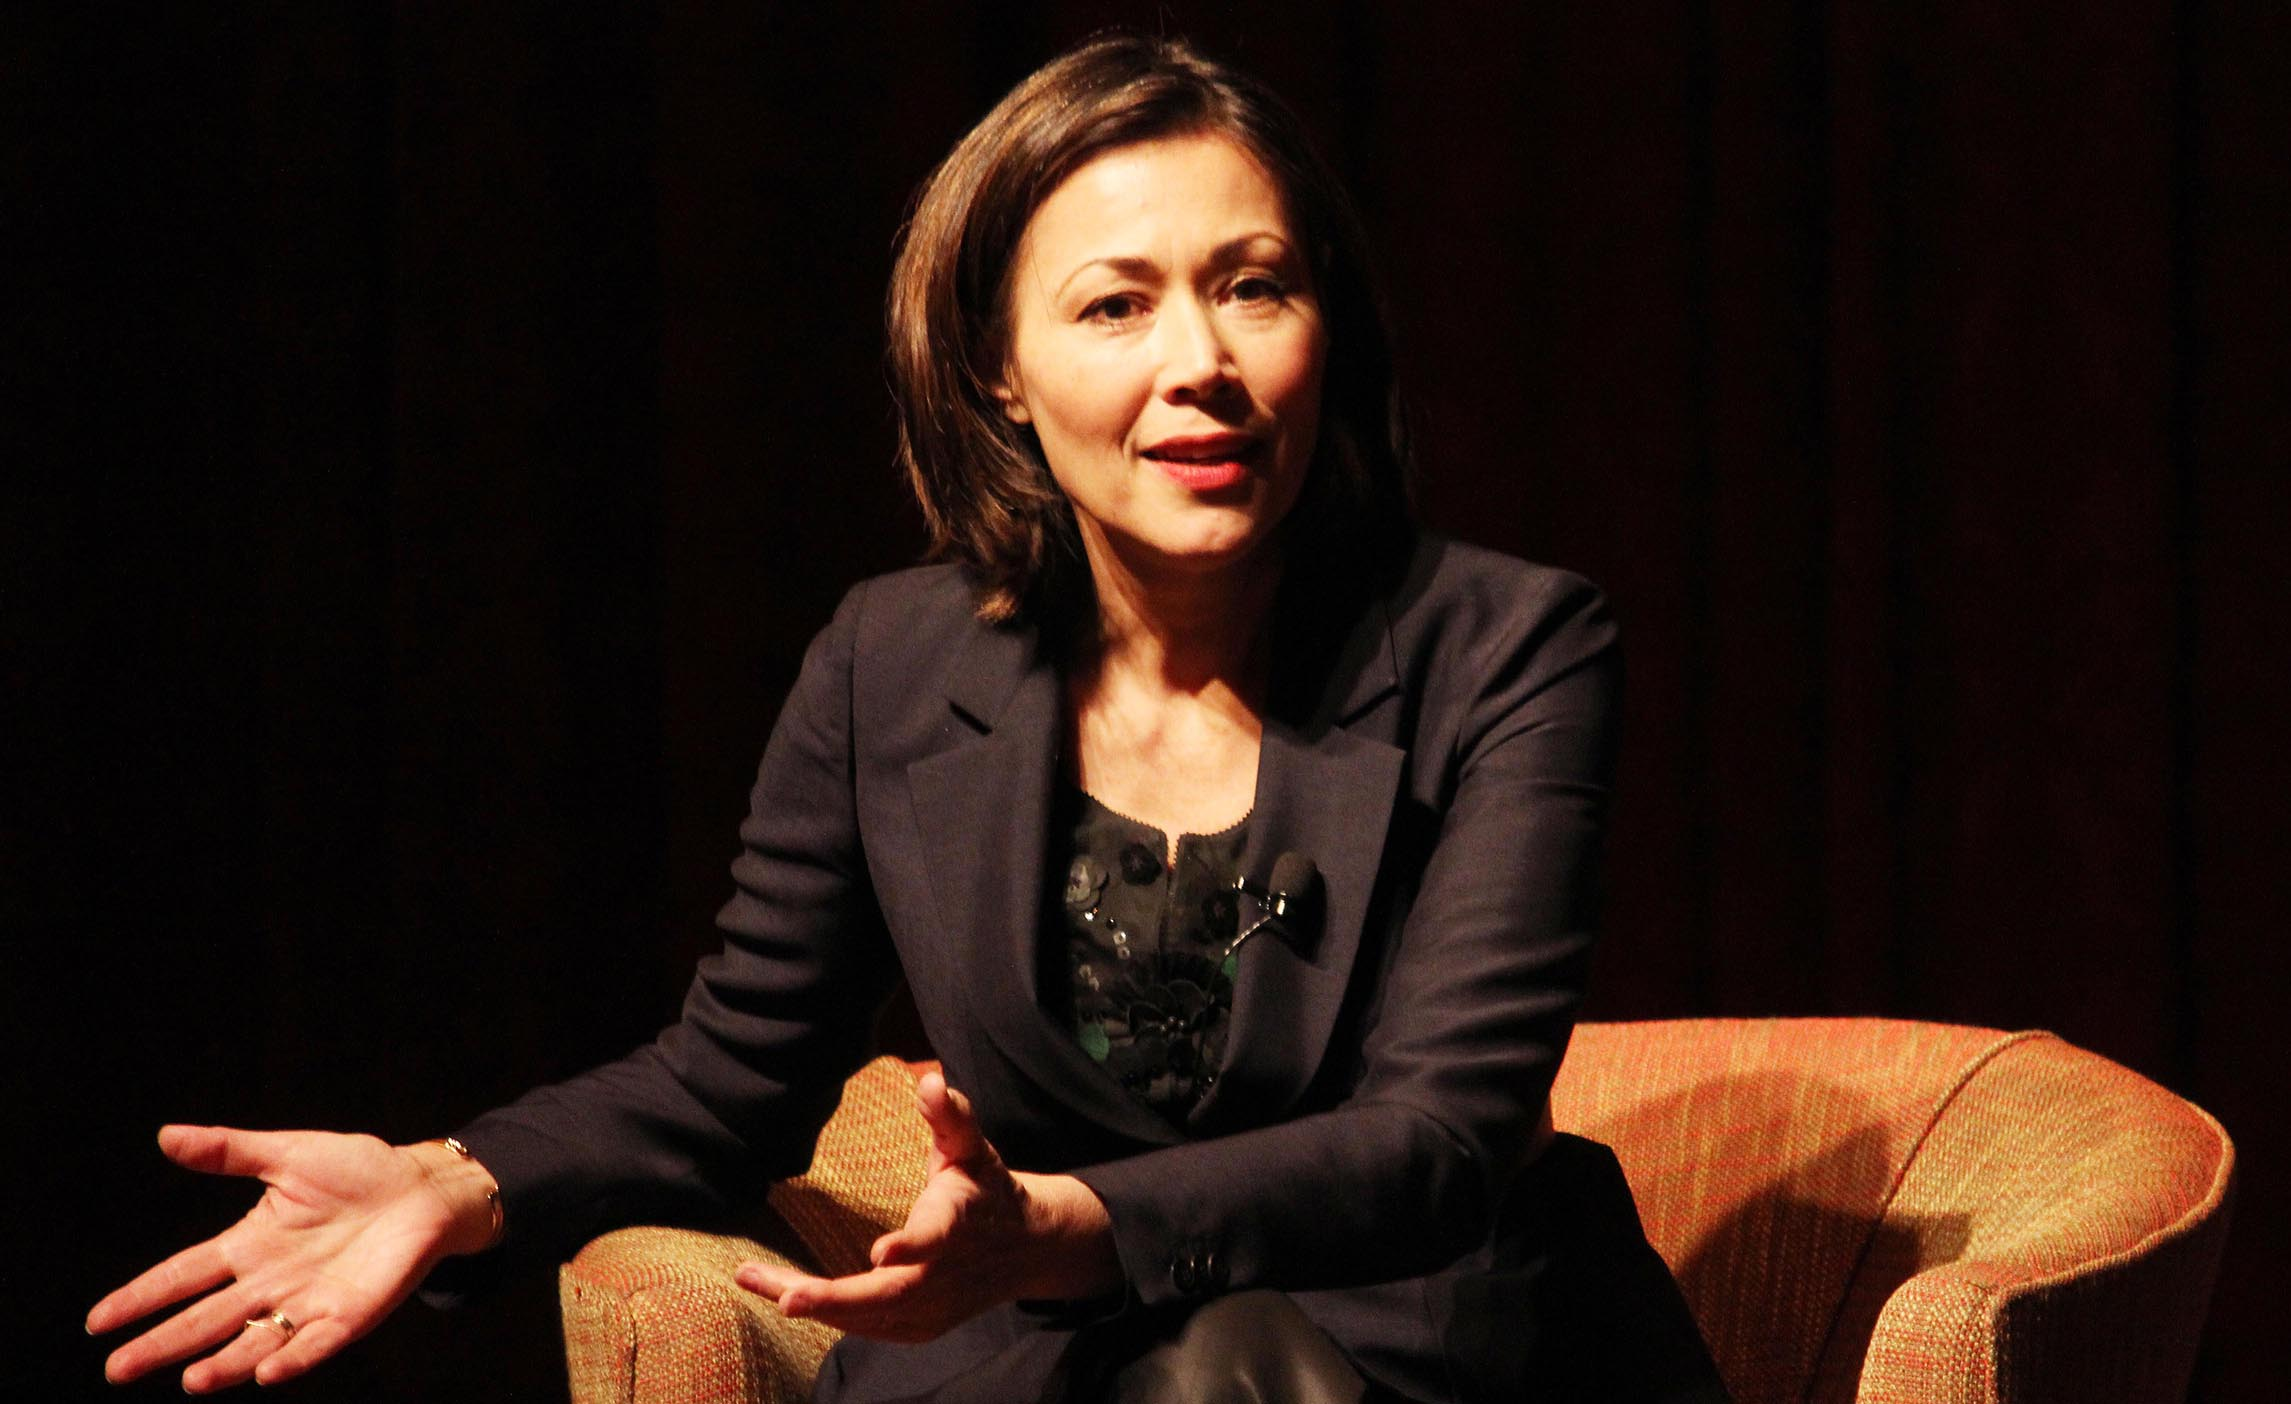 Ann Curry Photo by Lia Chang cropped